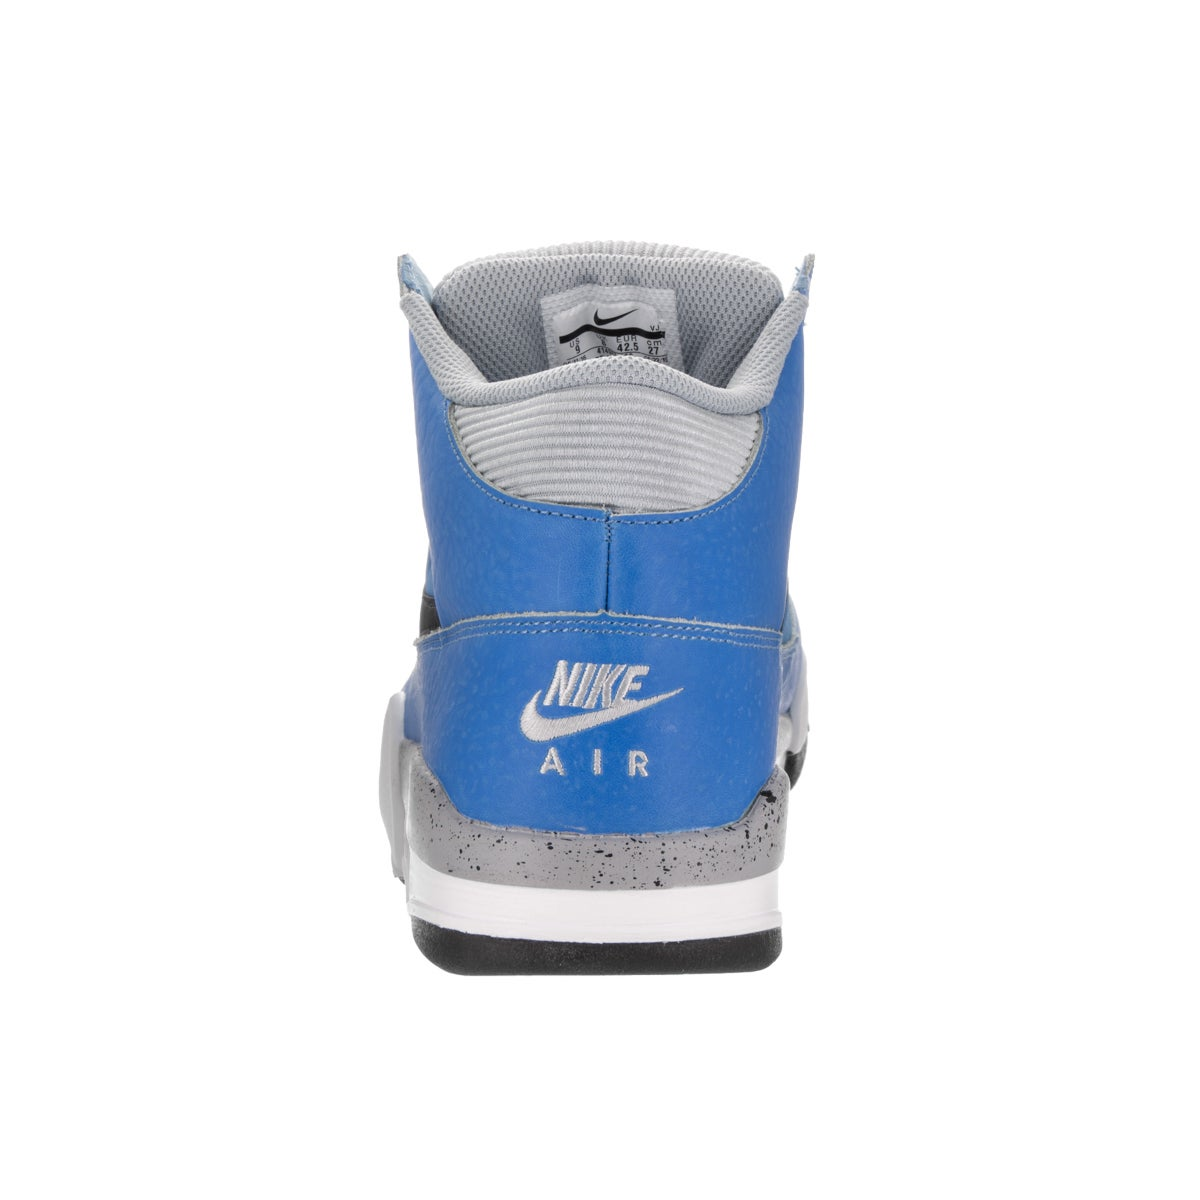 quality design 16fb6 0953c Shop Nike Men's Air Flight Classic Blue Synthetic Leather Basketball Shoe -  Free Shipping Today - Overstock - 13831151